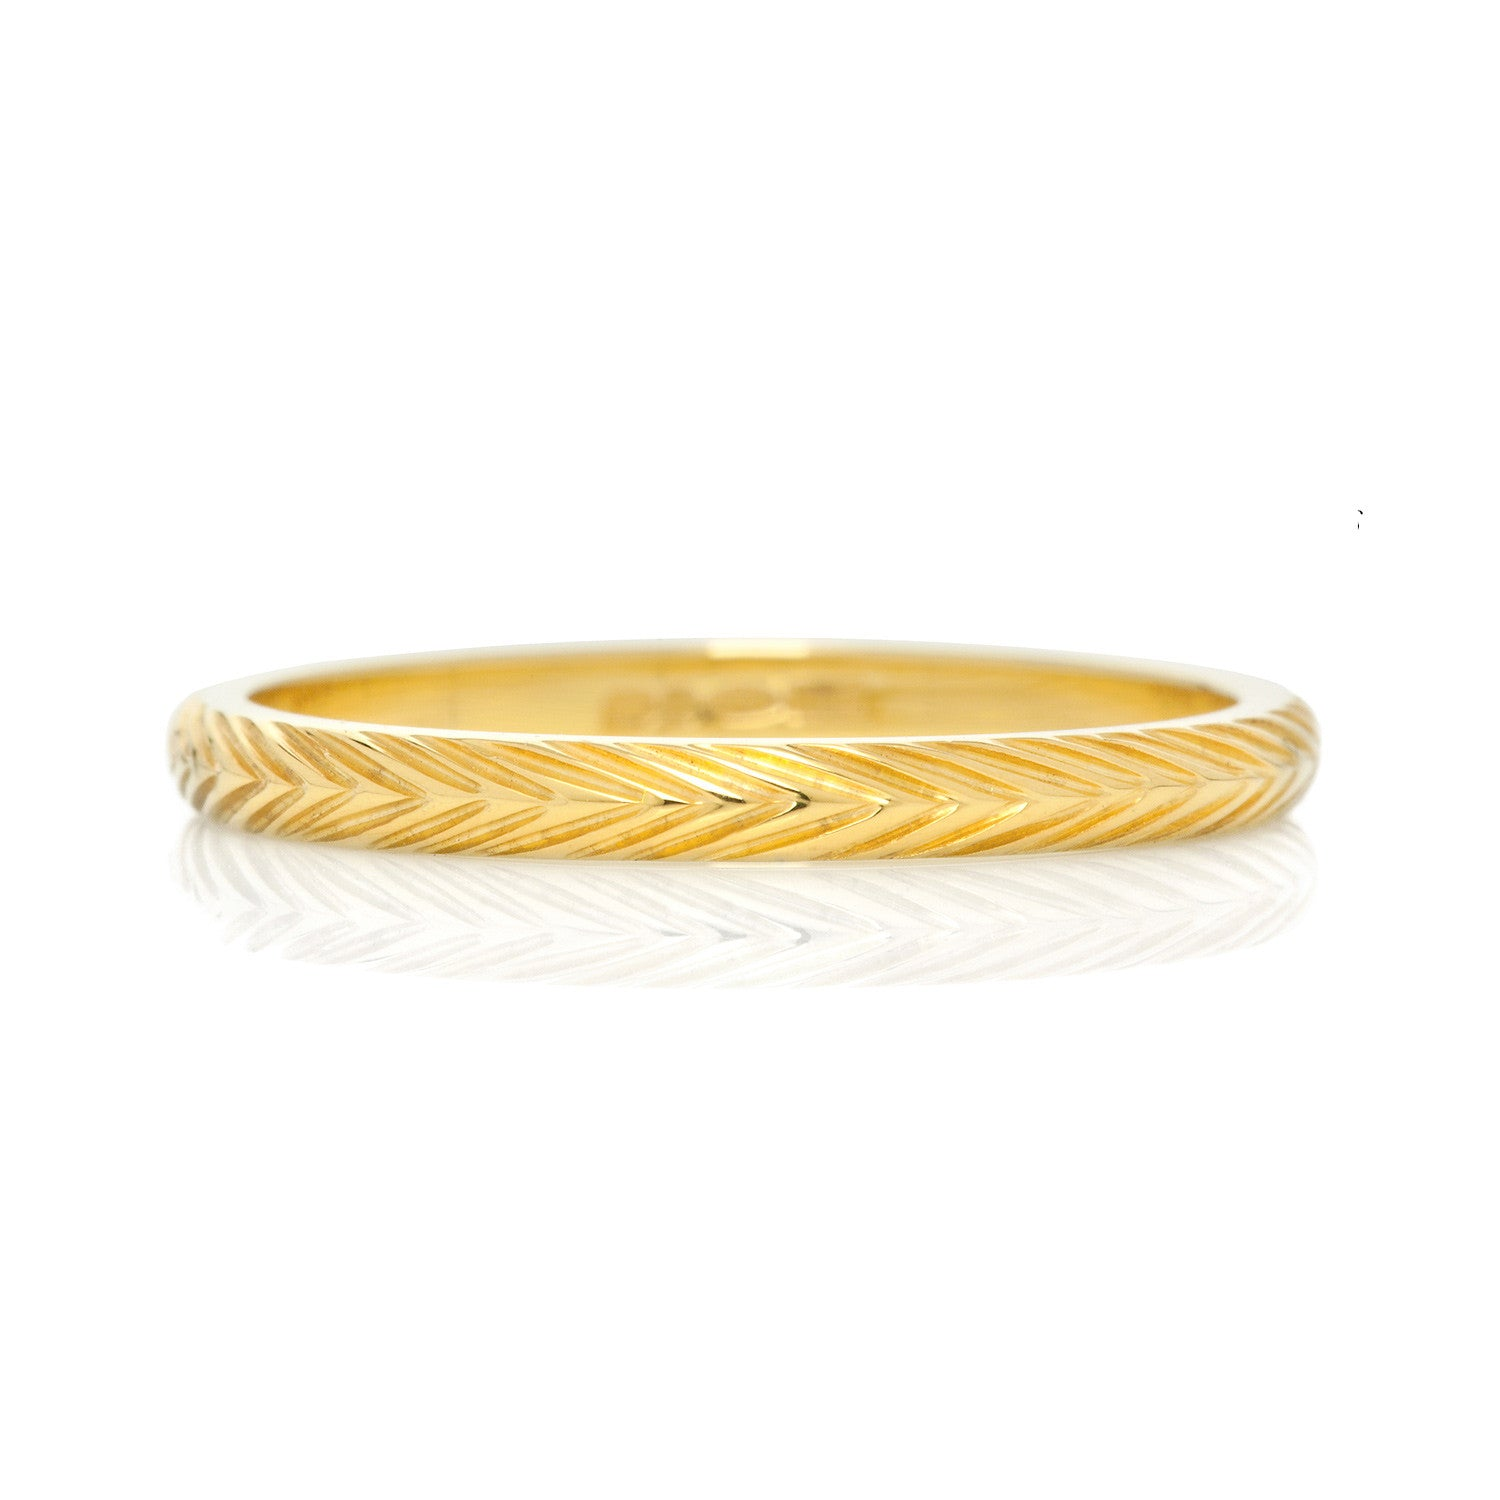 Wheat Sheaf Engraved Ethical Gold Wedding Ring, 2mm